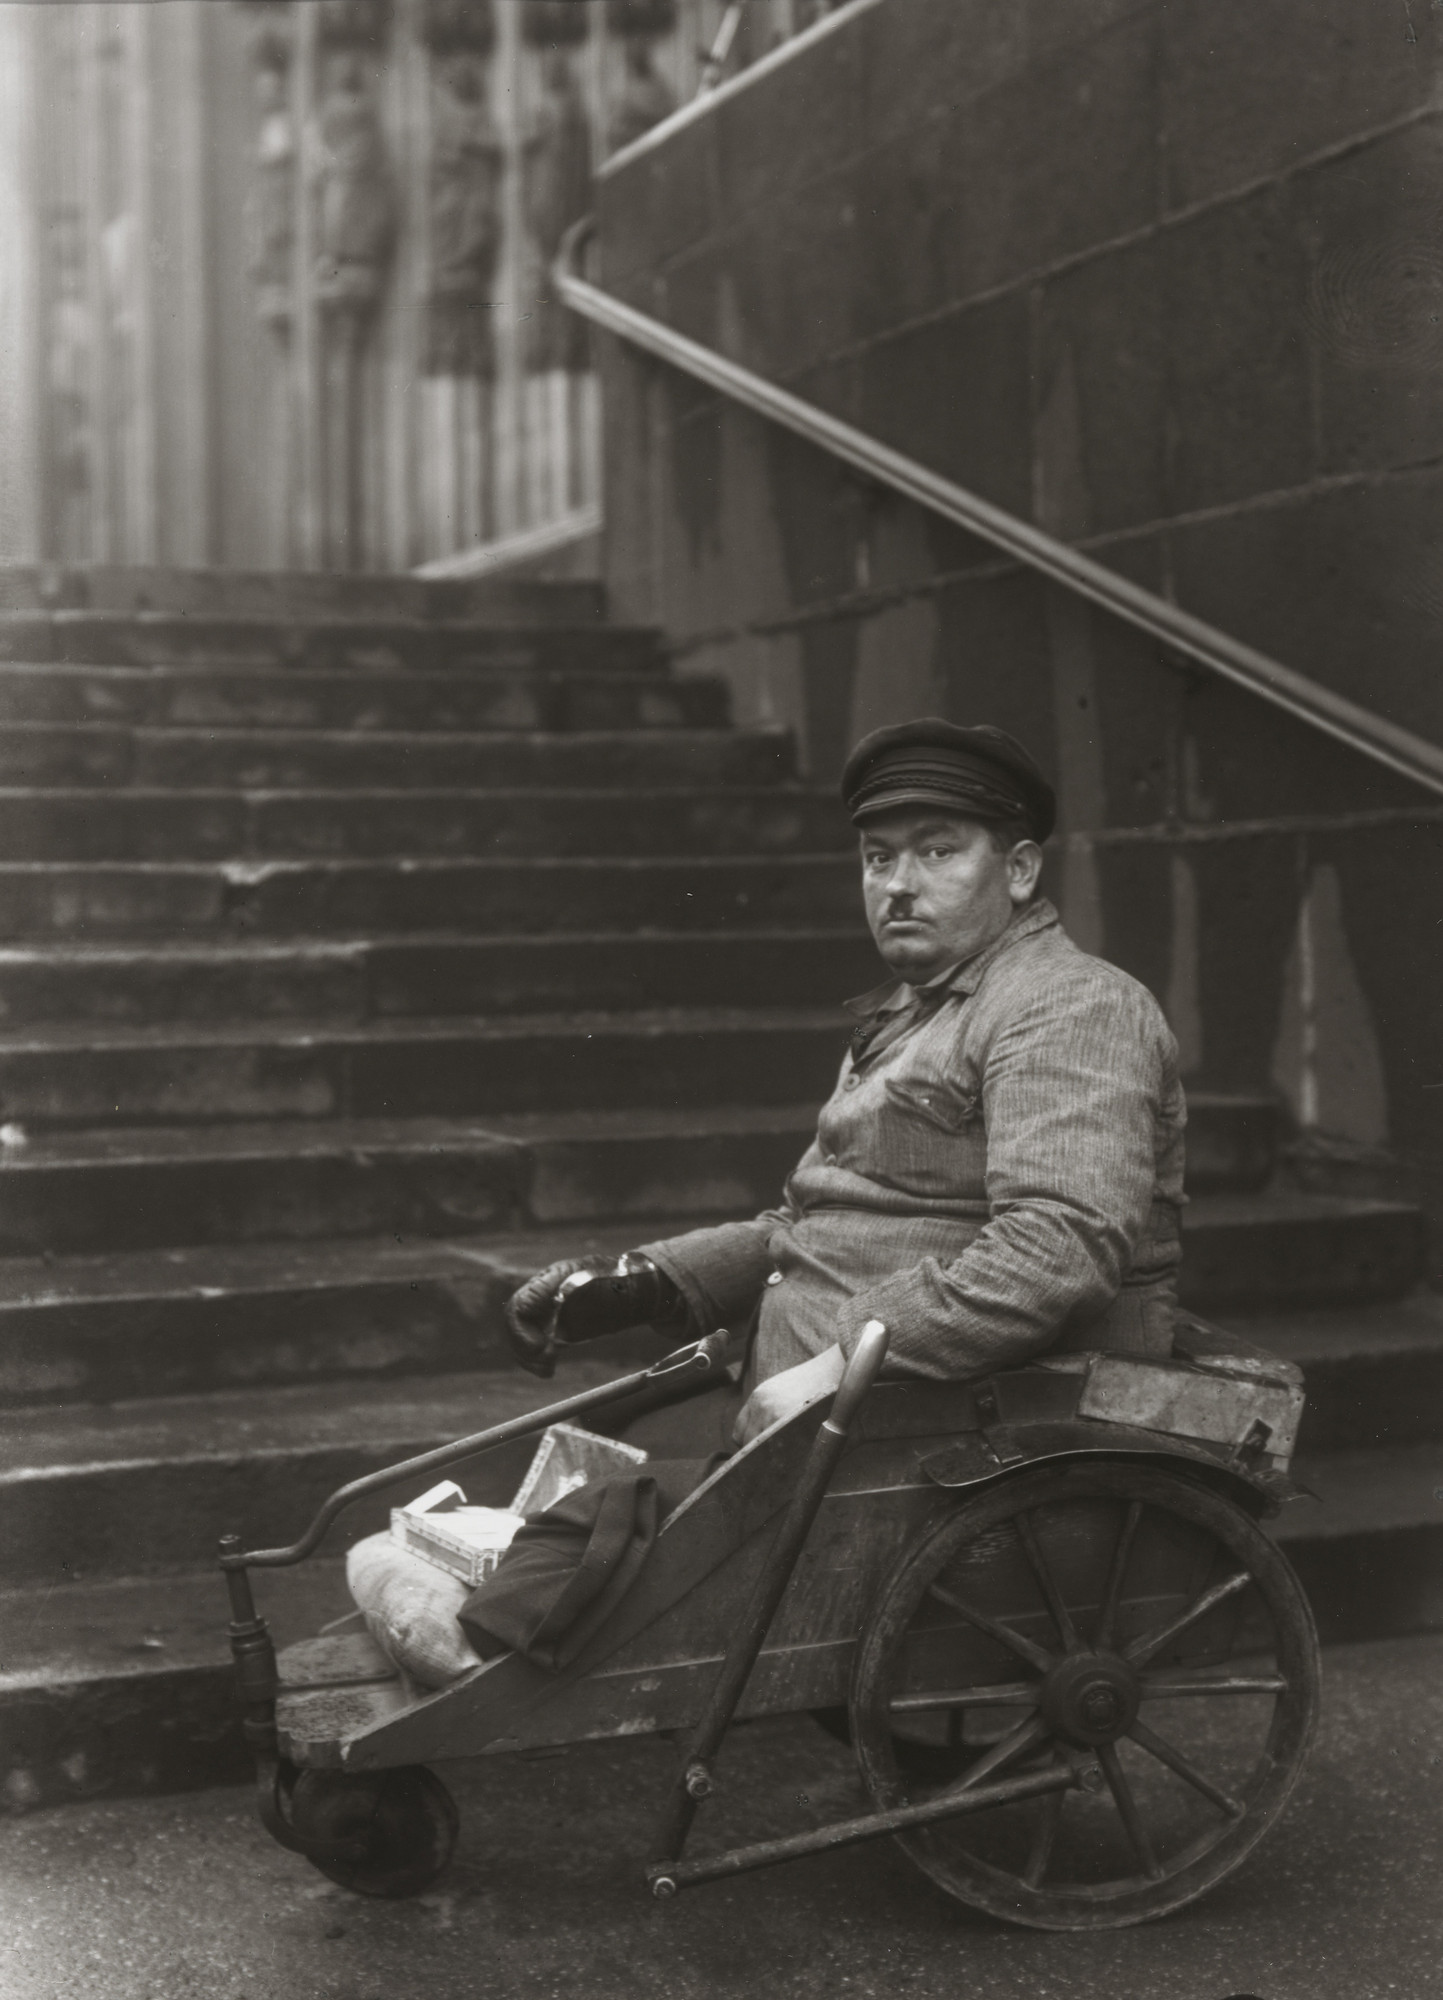 August Sander. Disabled Ex-serviceman. c. 1928